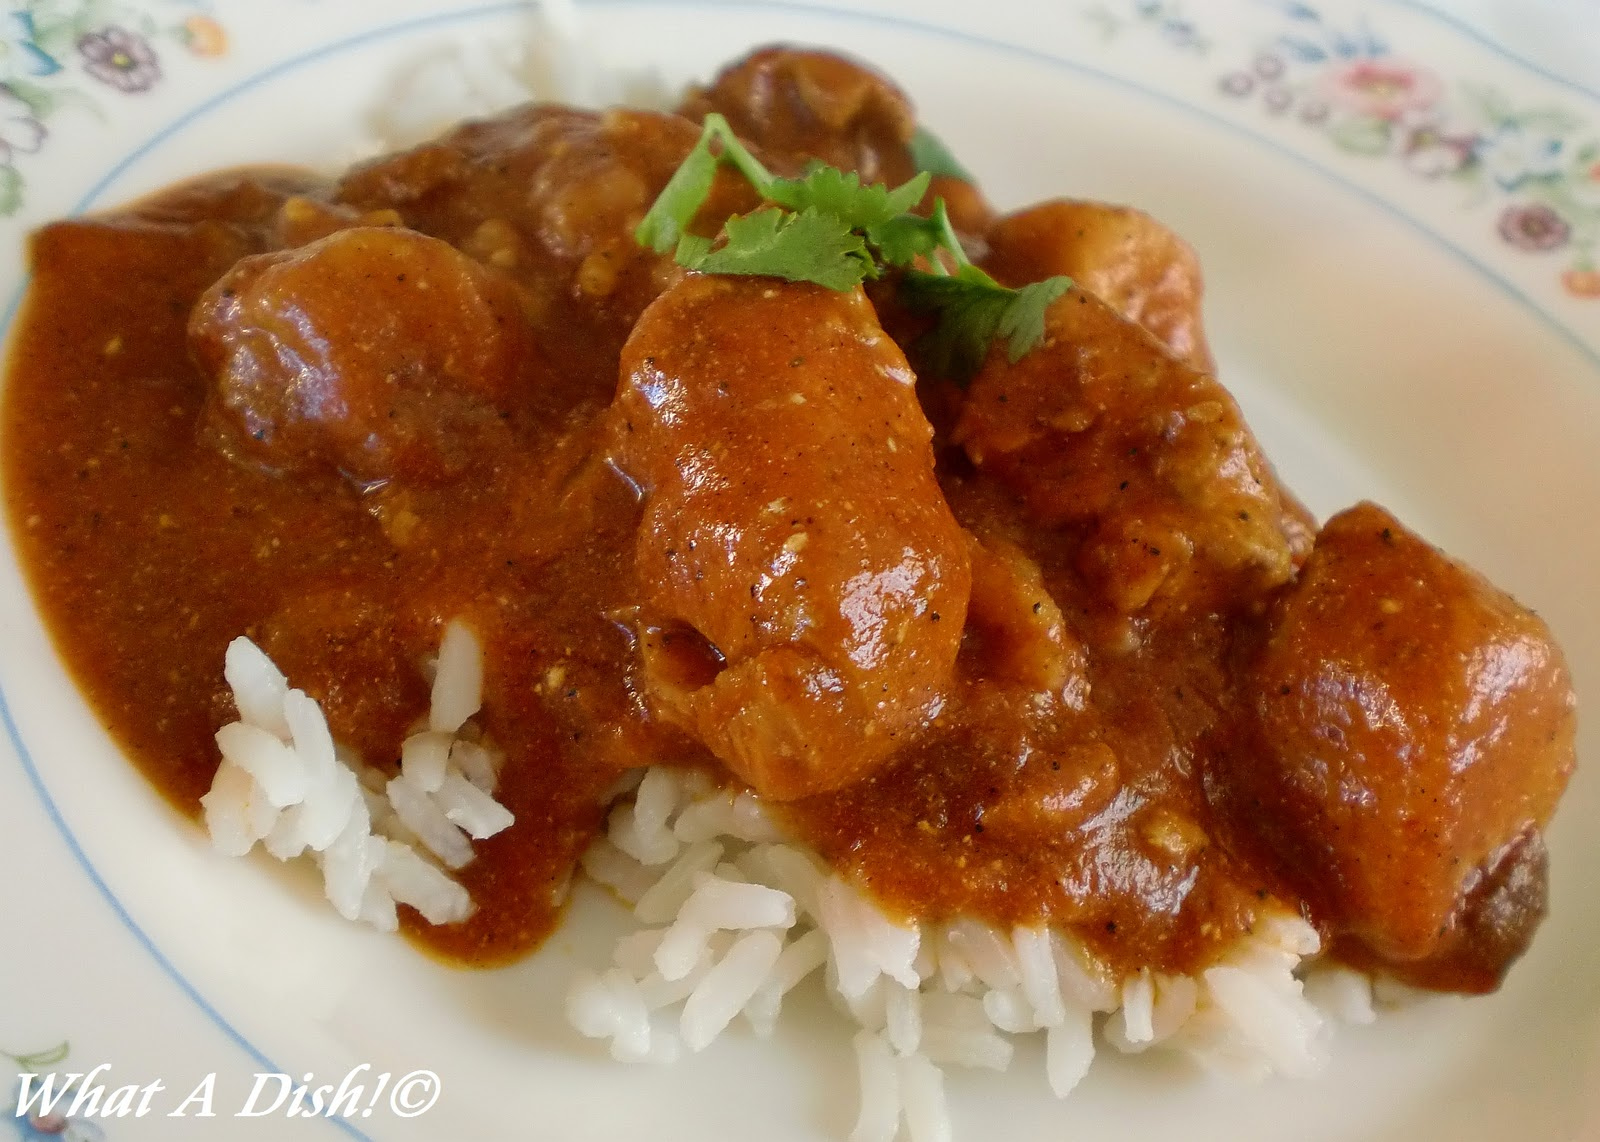 What A Dish!: Slow Cooker Indian Butter Chicken